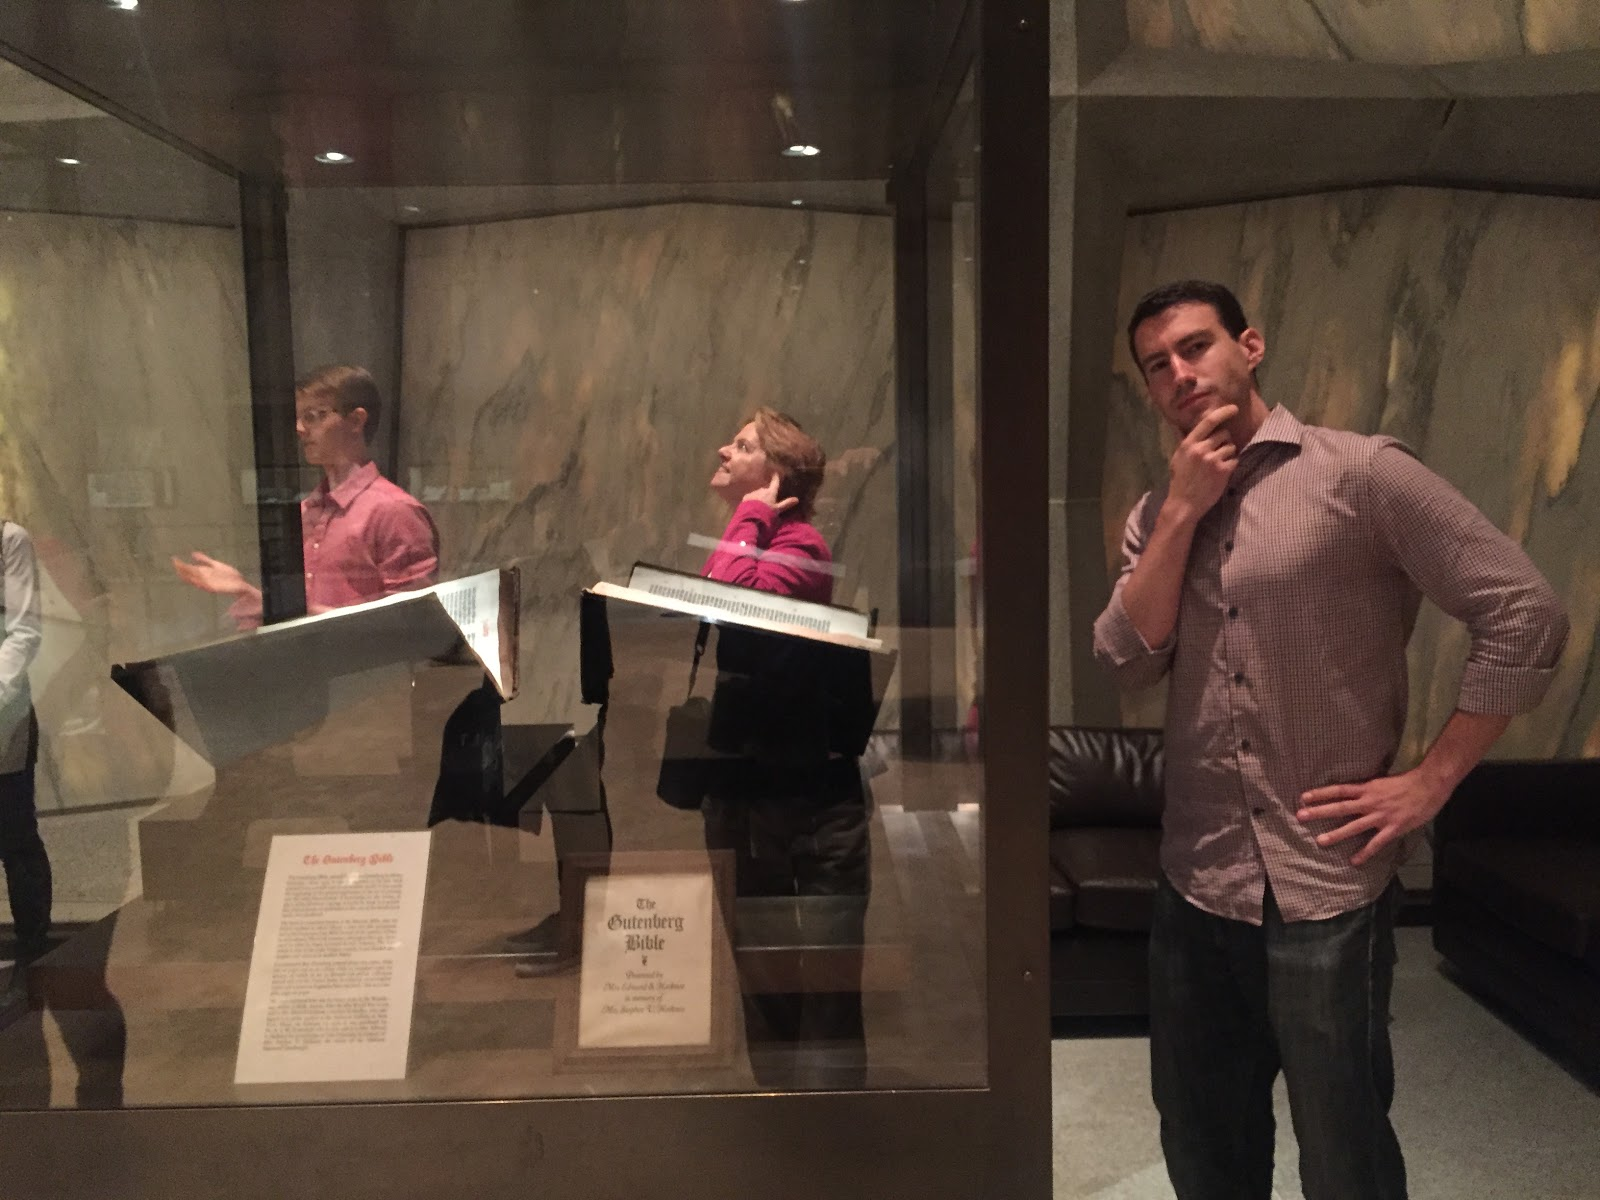 Posing with the Gutenberg Bible